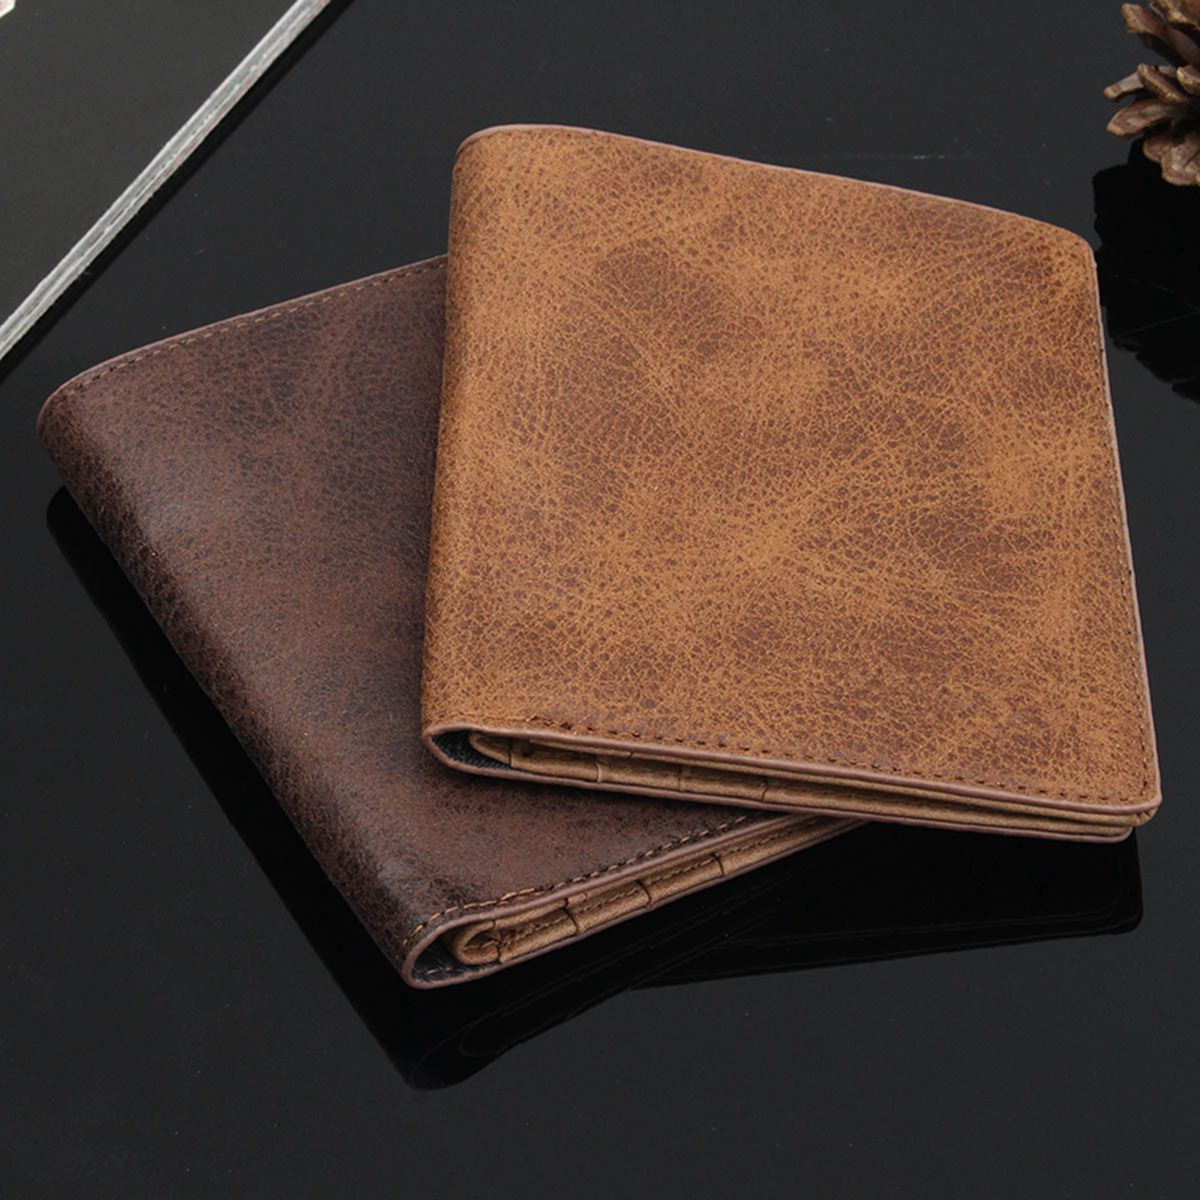 Exquisite Men's Soft Leather Slim Bifold Money Purse Business Credit ID Card Holder Wallet Multifunctional Card Note Holder 2017 men ultra thin short bifold business leather wallet money card holder bag purse traveling bifold business leather june0627